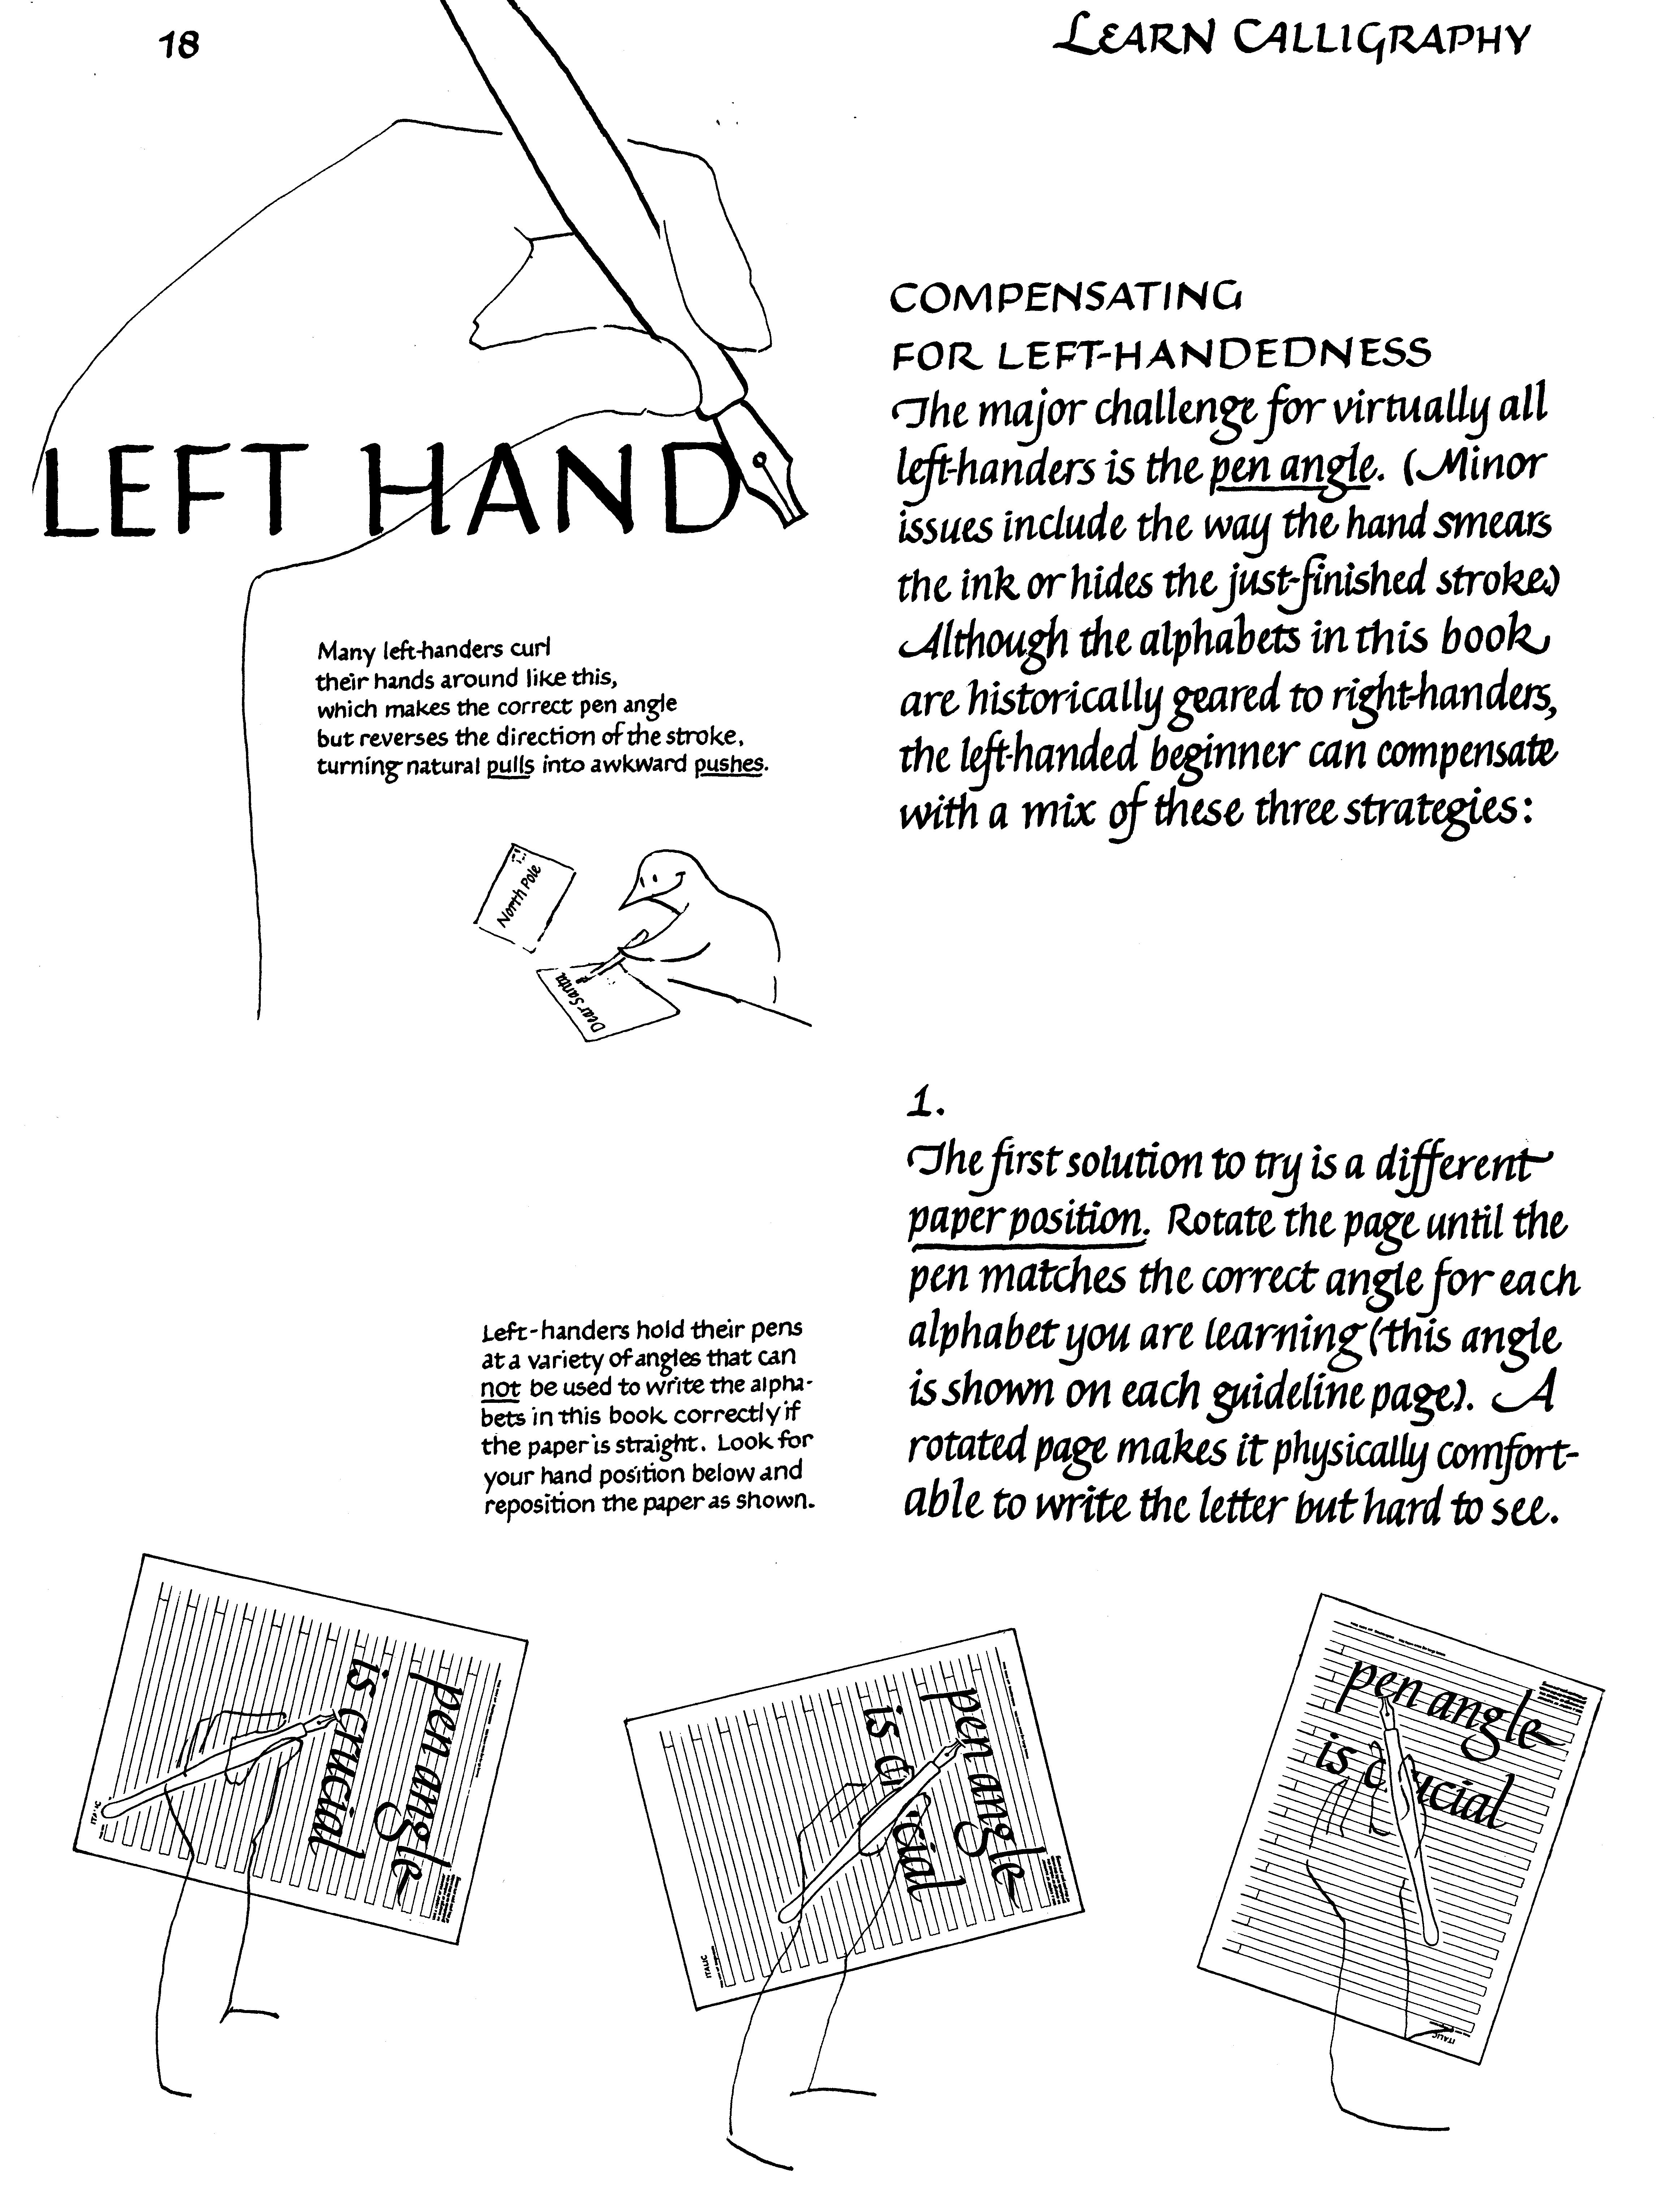 For Lefthanders From Learn Calligraphy By Margaret